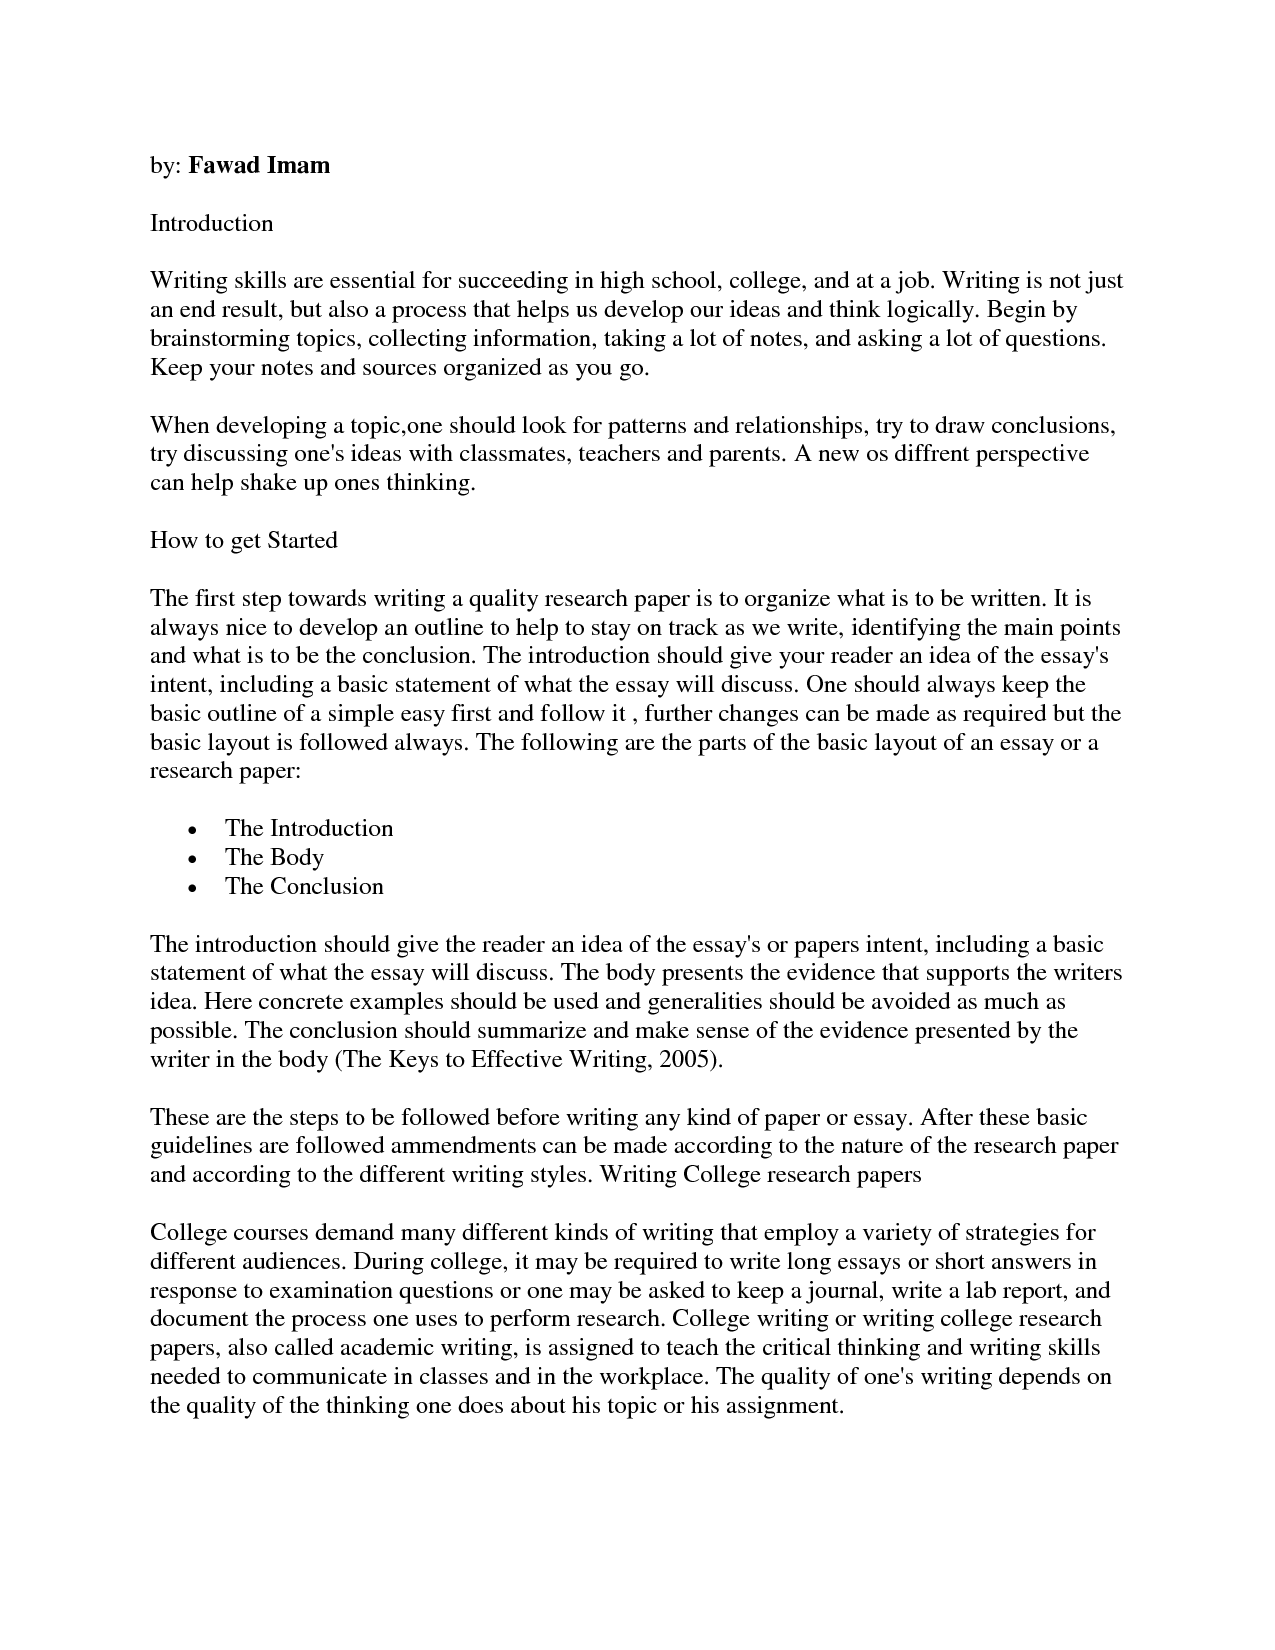 006 How To Write Research Papers Paper Outstanding A Proposal Or Thesis In Apa Format Introduction Pdf